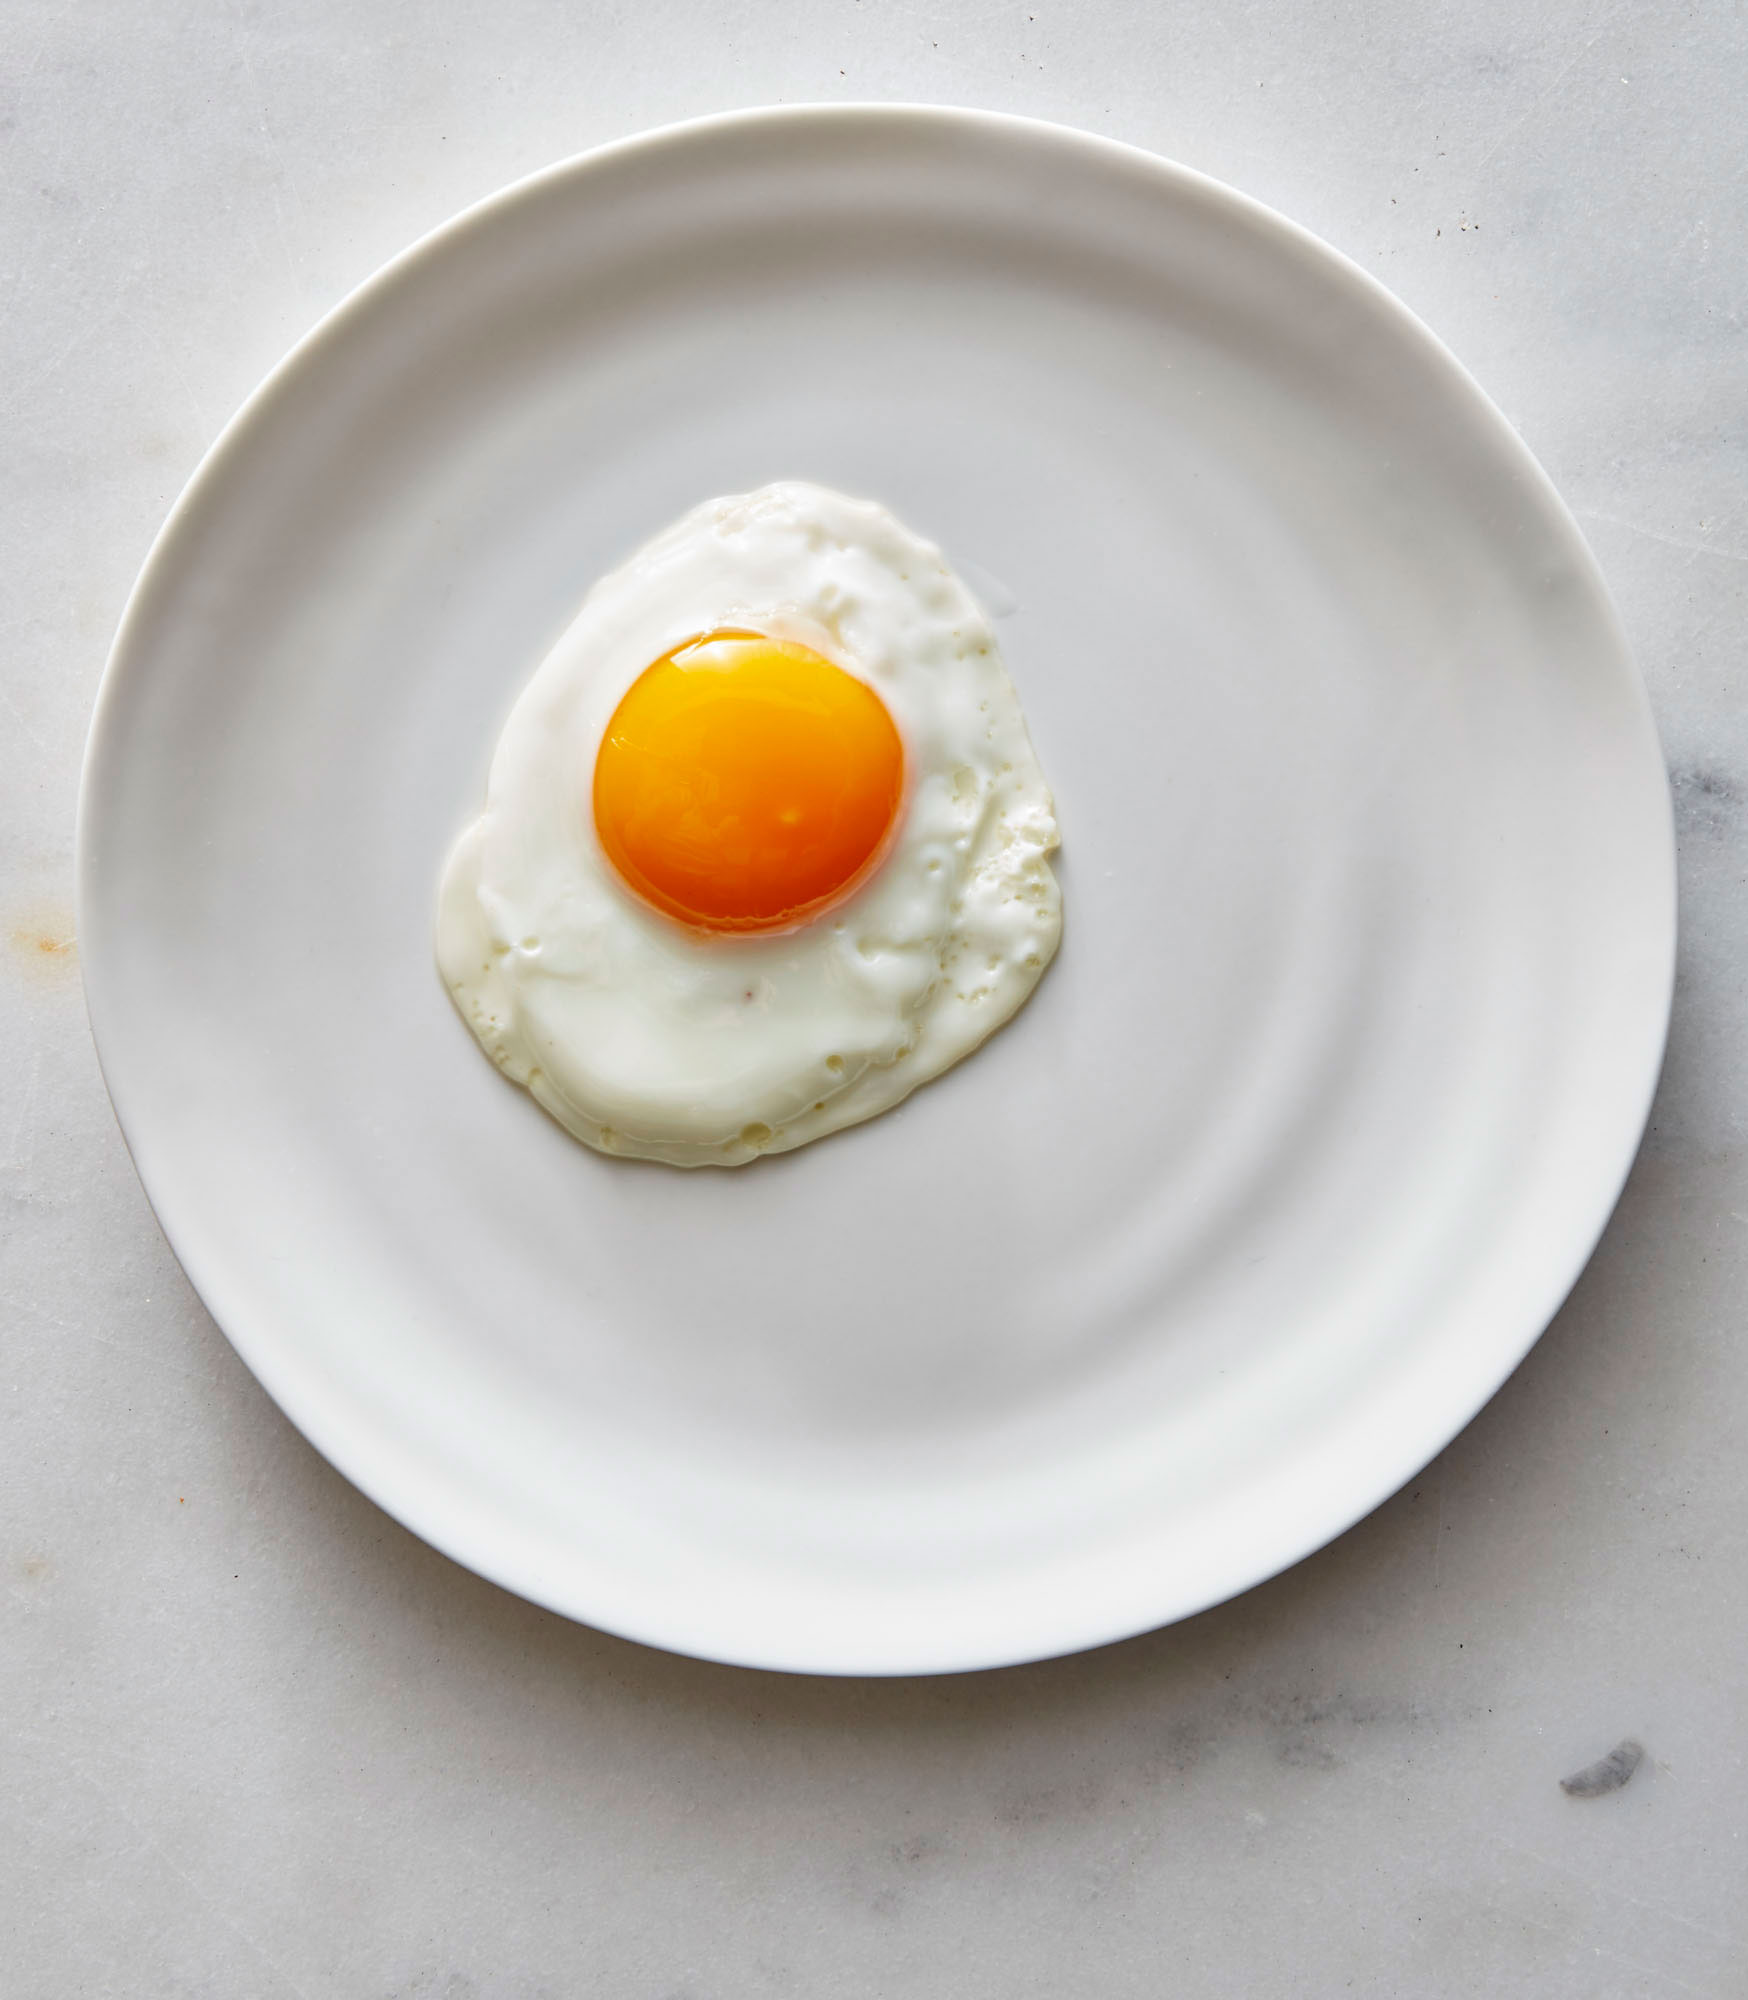 Pristine Sunny-Side Up Eggs image